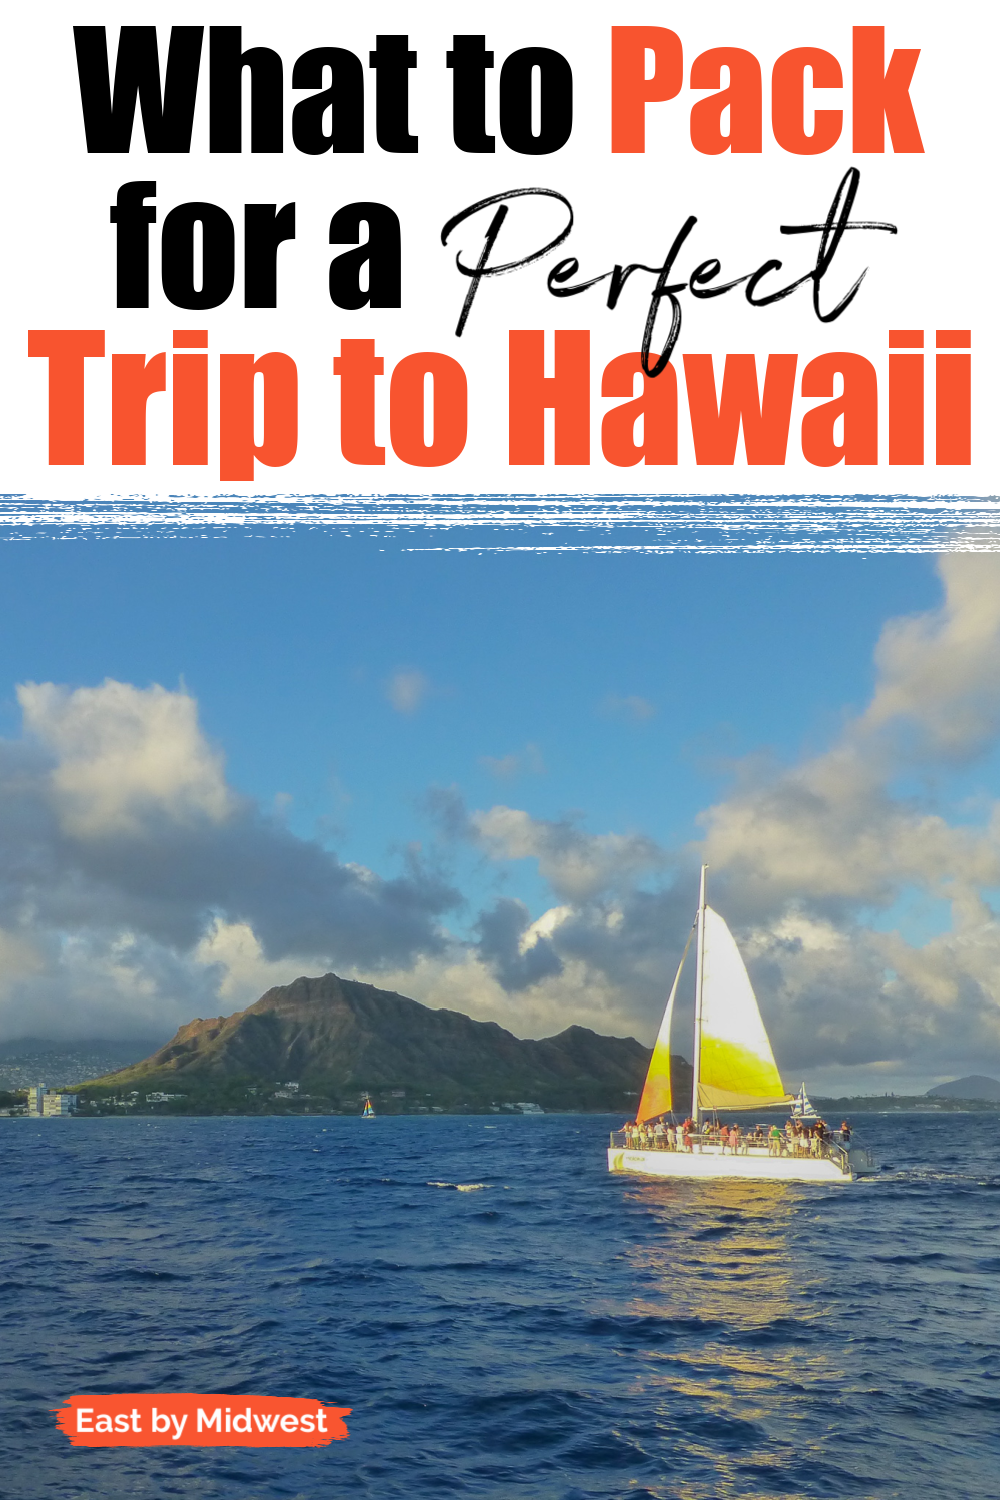 What to Pack for Hawaii: Everything You Need for an Amazing Adventure